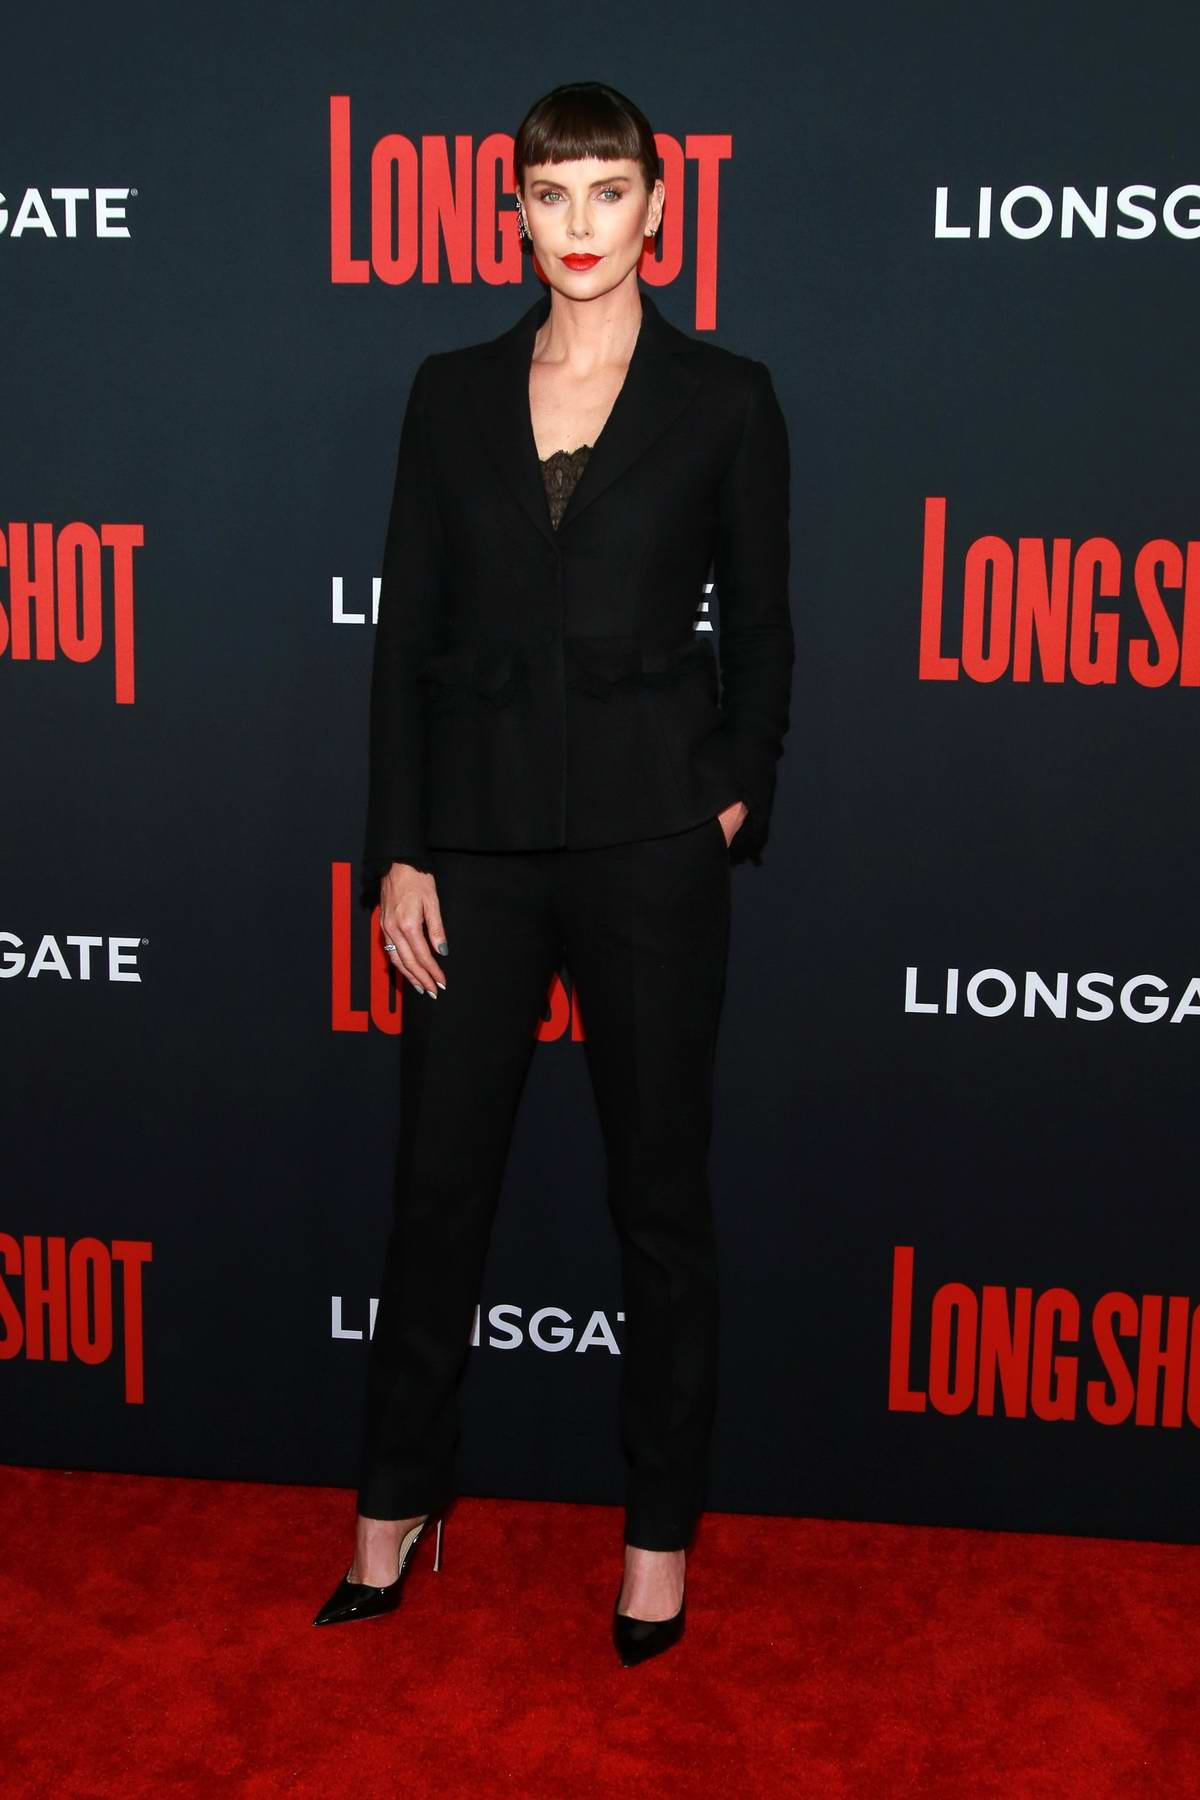 Charlize Theron attends 'Long Shot' premiere at AMC Lincoln Square Theater in New York City